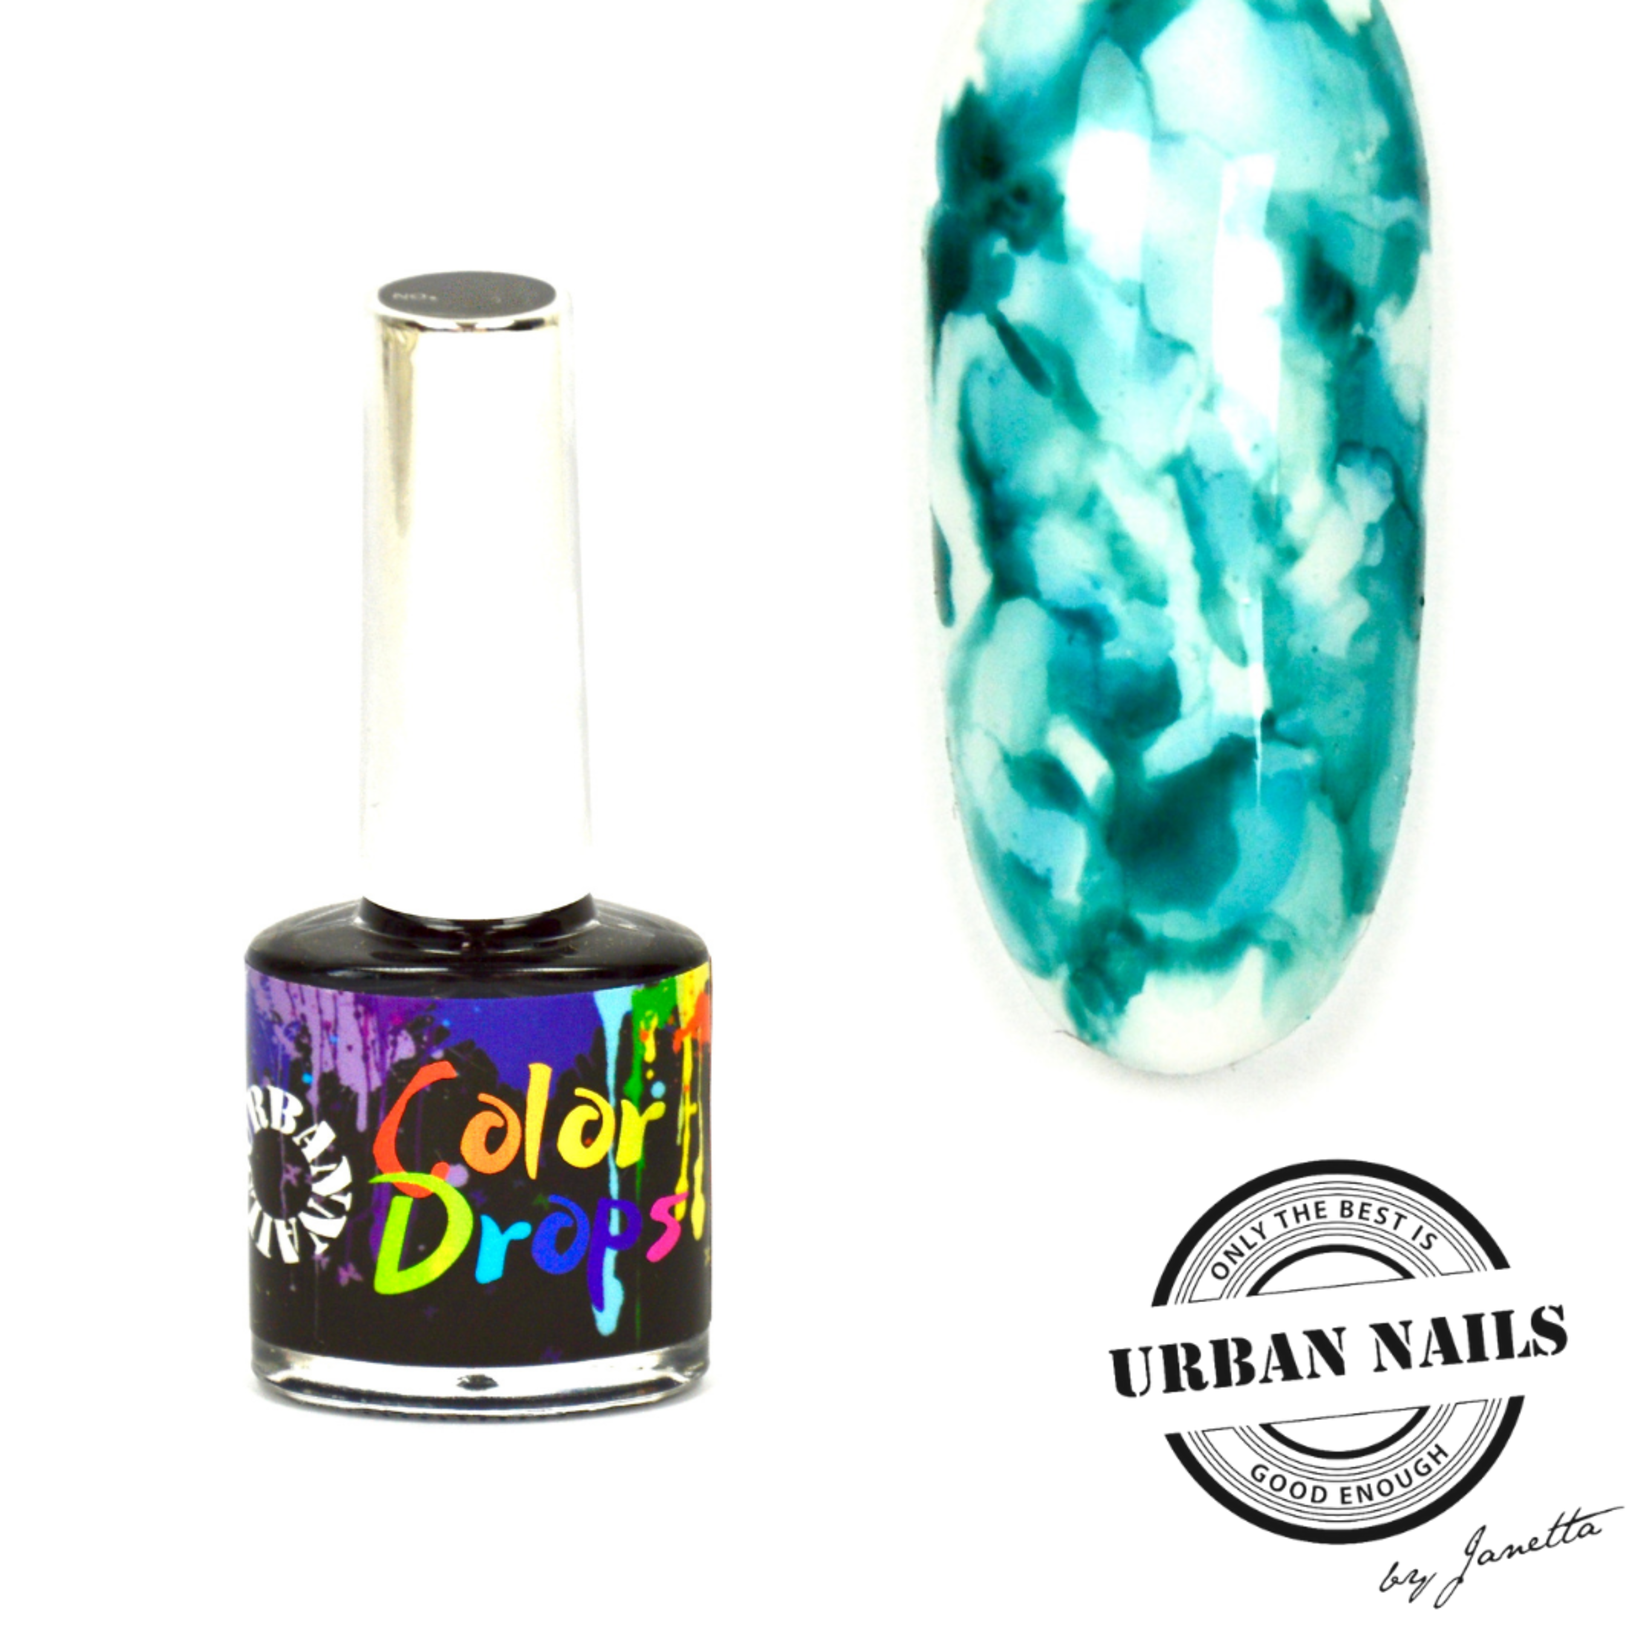 Urban Nails Color Drops 006 Turquoise